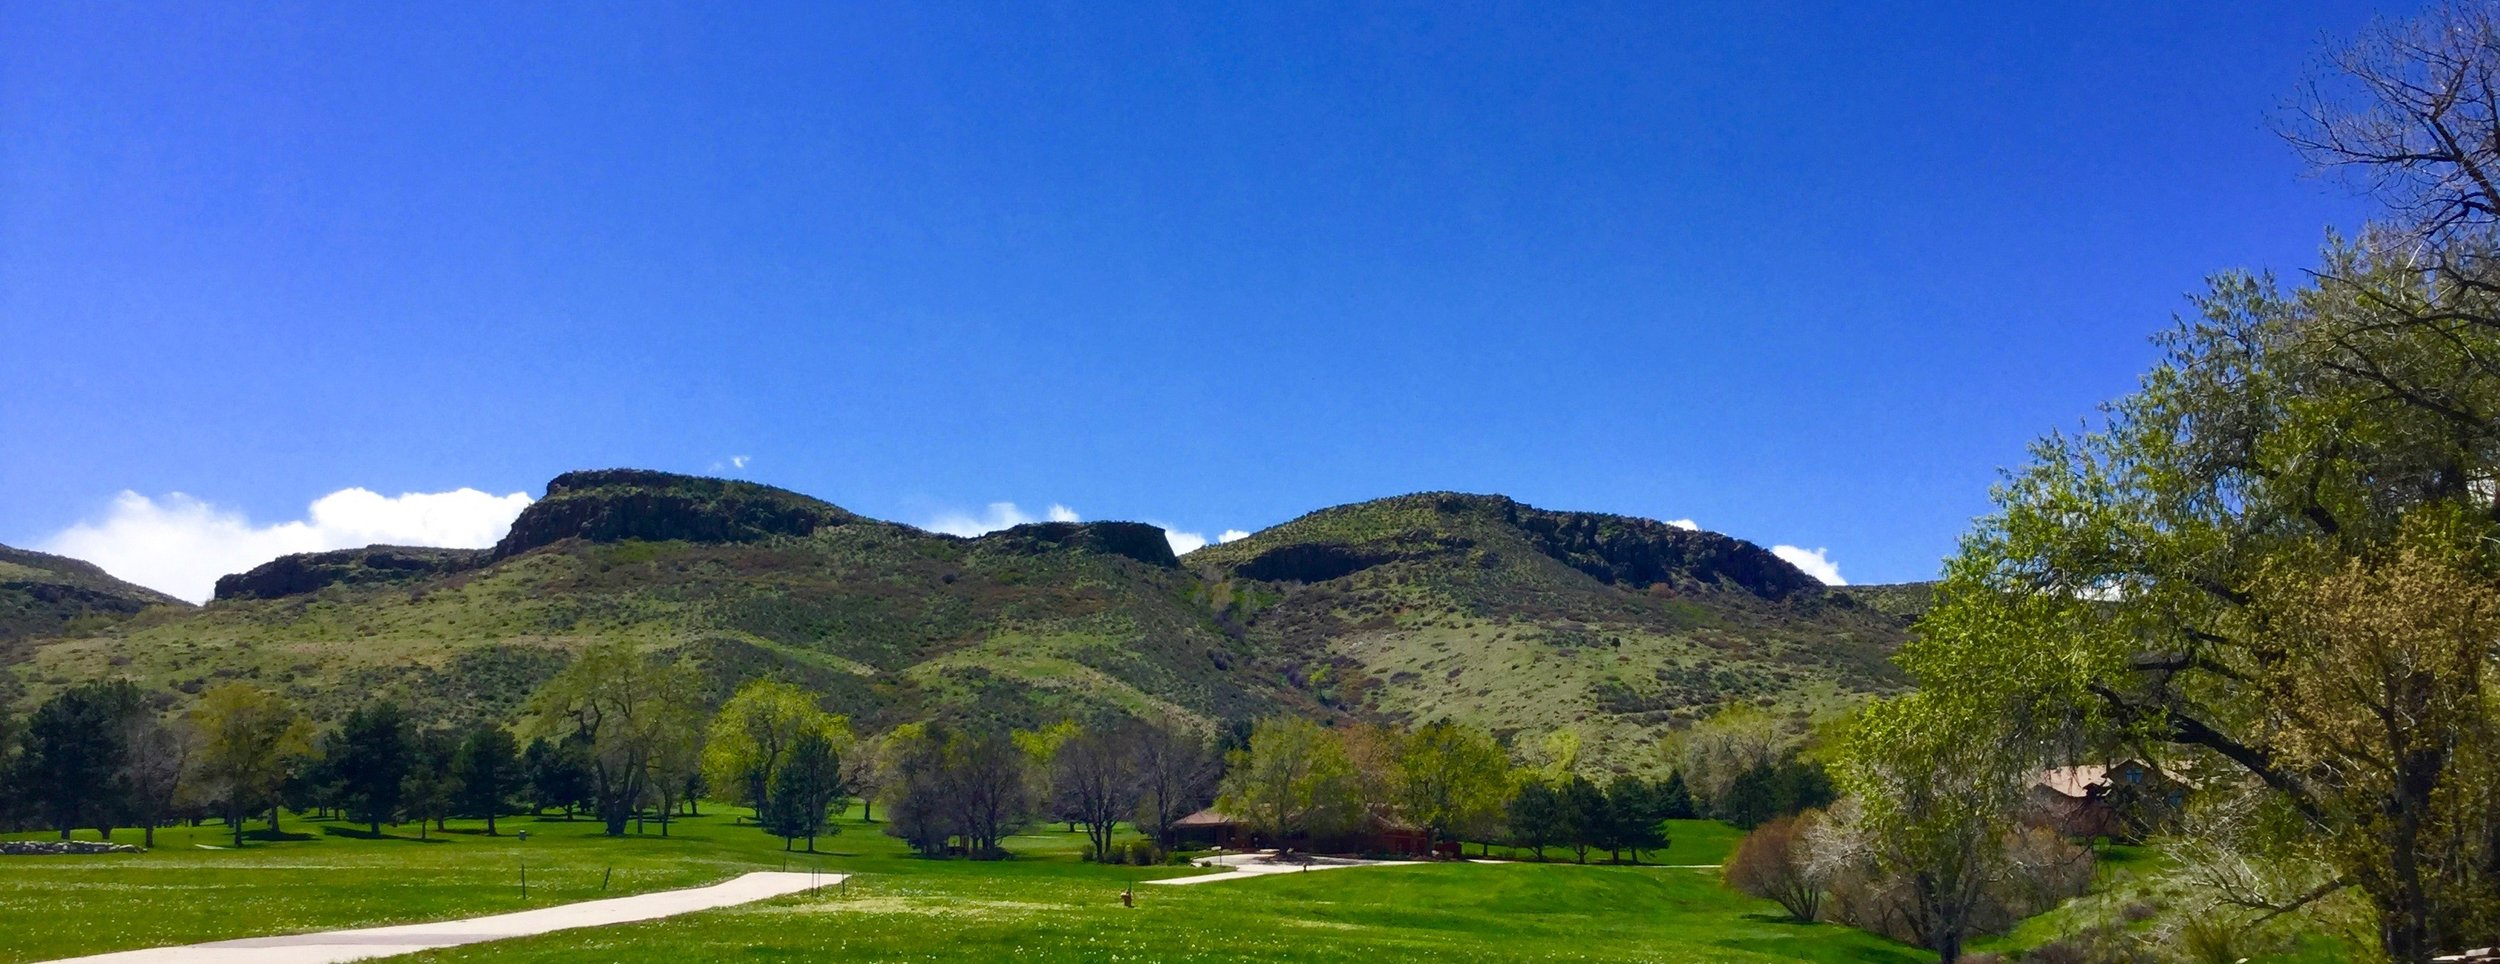 The East side of South Table Mountain in Golden, Colorado